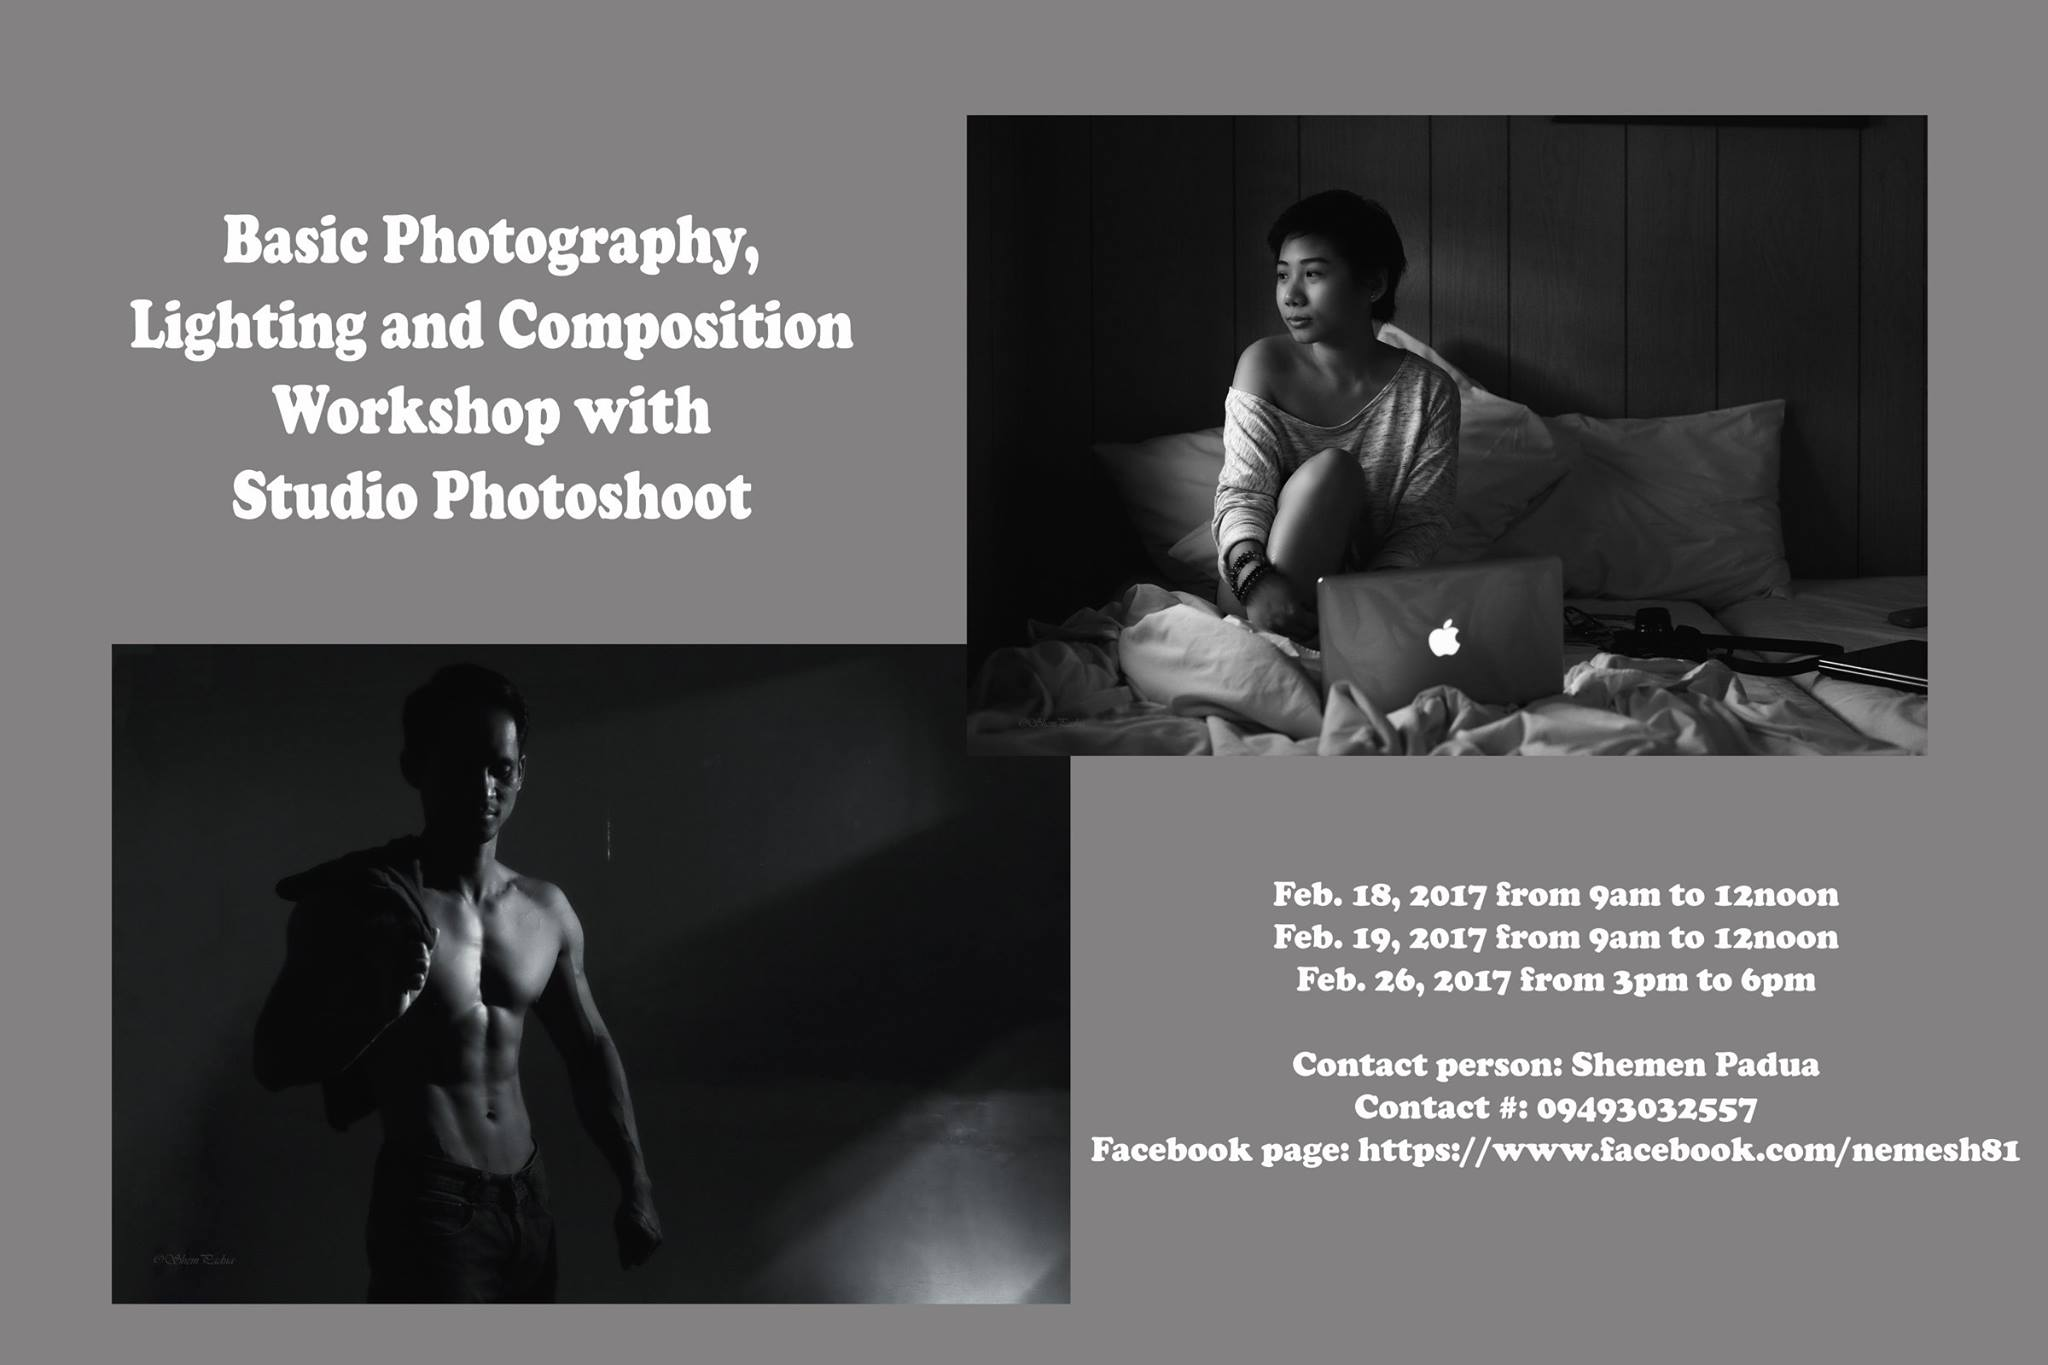 Photography photoshoot workshop